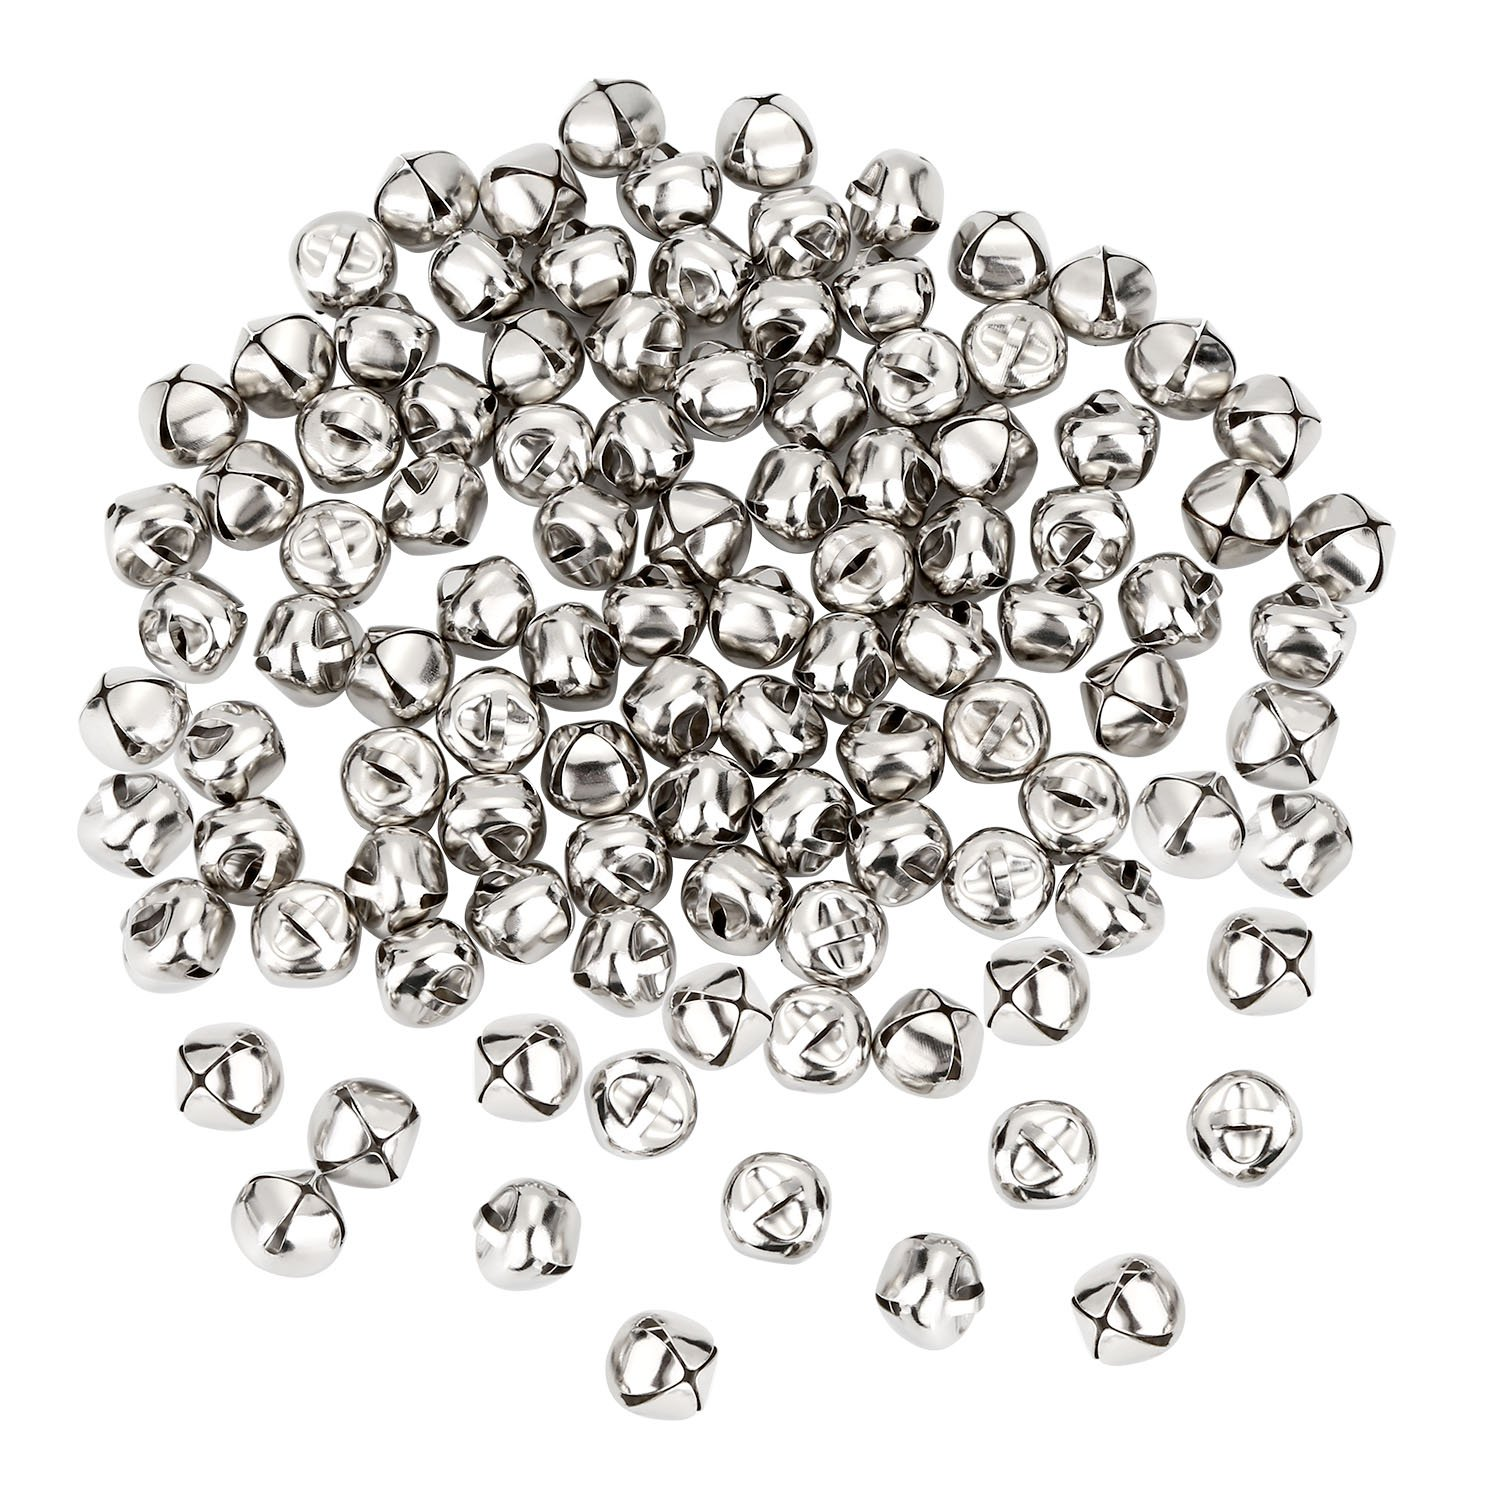 Shappy 100 Pieces Jingle Bells, 0.5 inch Metal Bells Mini Craft Bell Bulk for DIY Decoration (Silver Color)